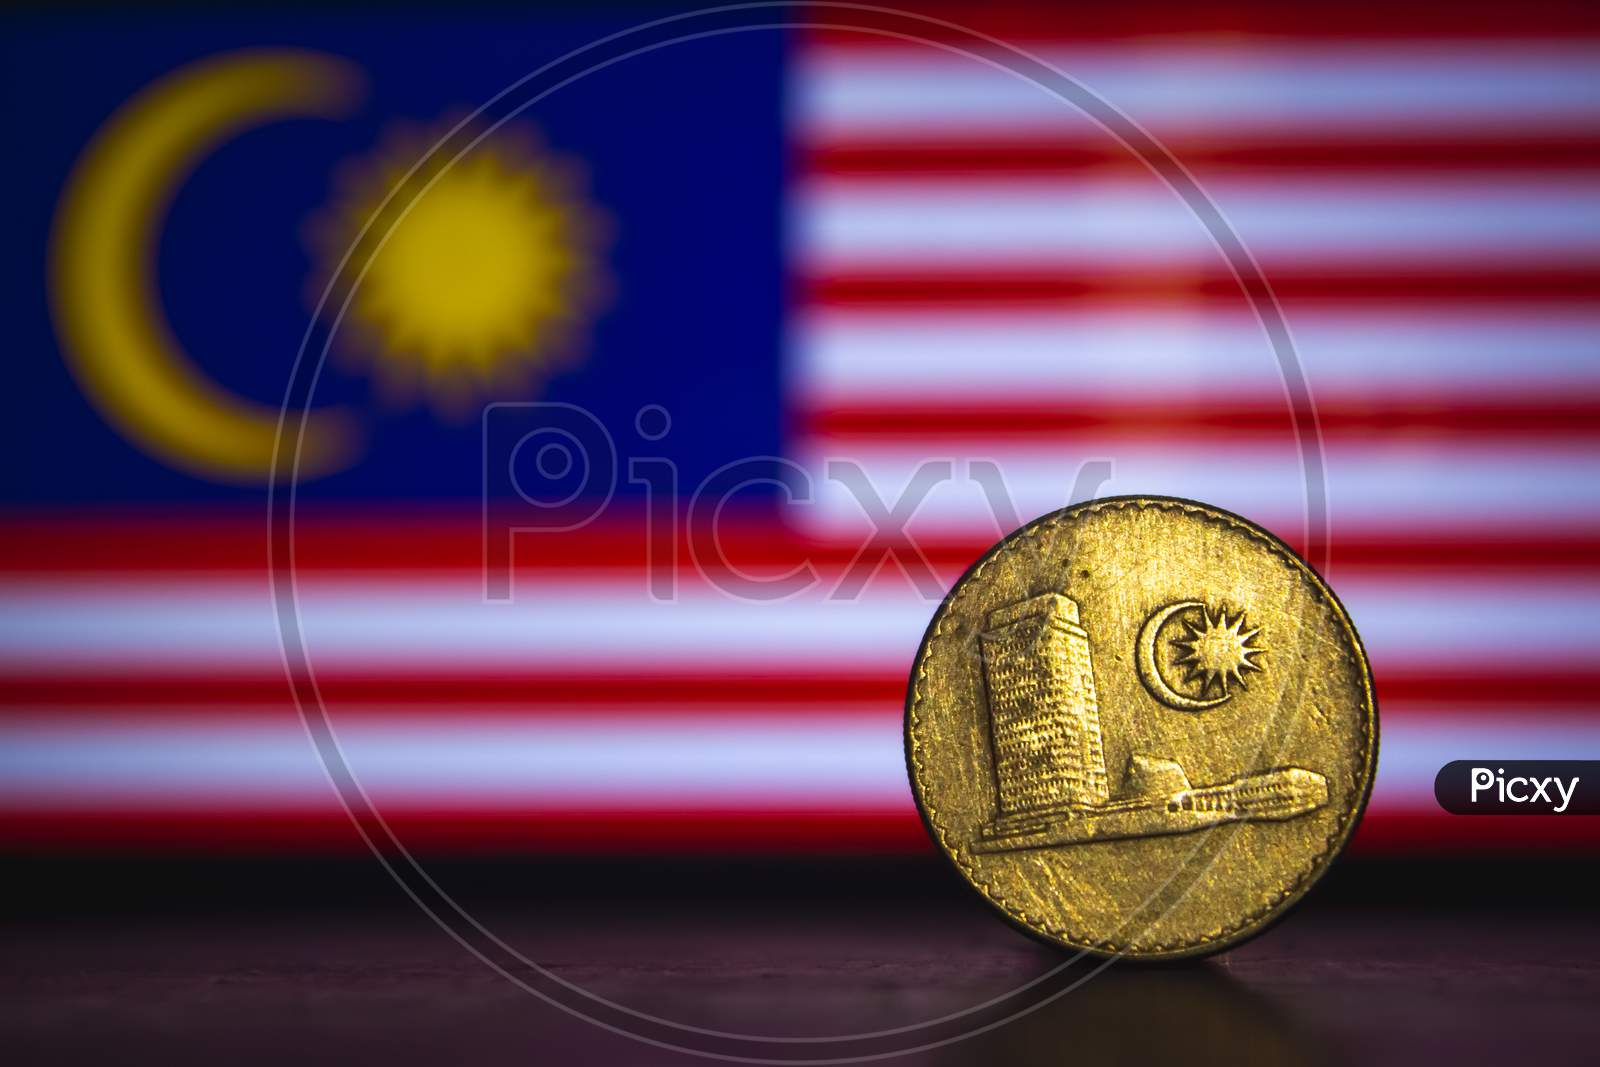 Malaysian Coin - Malaysia 20 Sen 1973 Coin Isolated On Malaysia Flag Background. Malaysian Currency Twenty Sen Coin With Space For Text Copy.